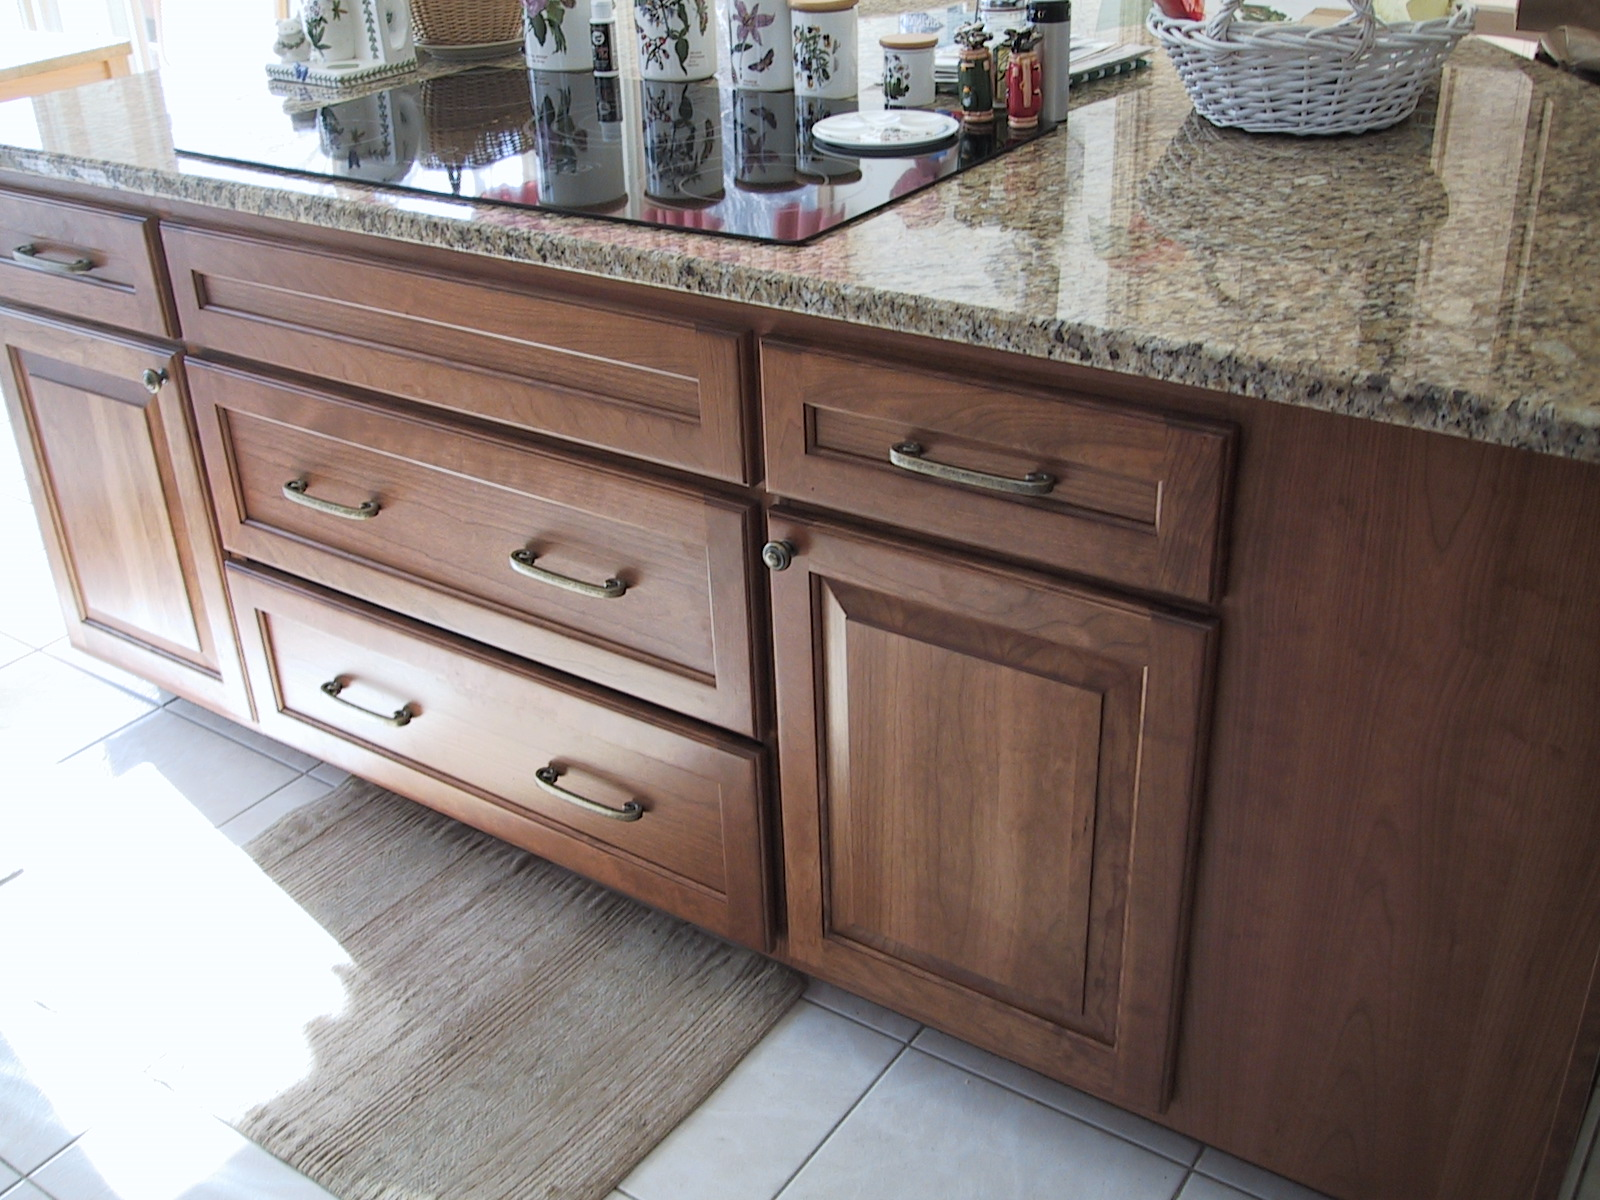 replacing cabinets keeping countertops possible replacing kitchen countertops Granite counters refaced cabinets